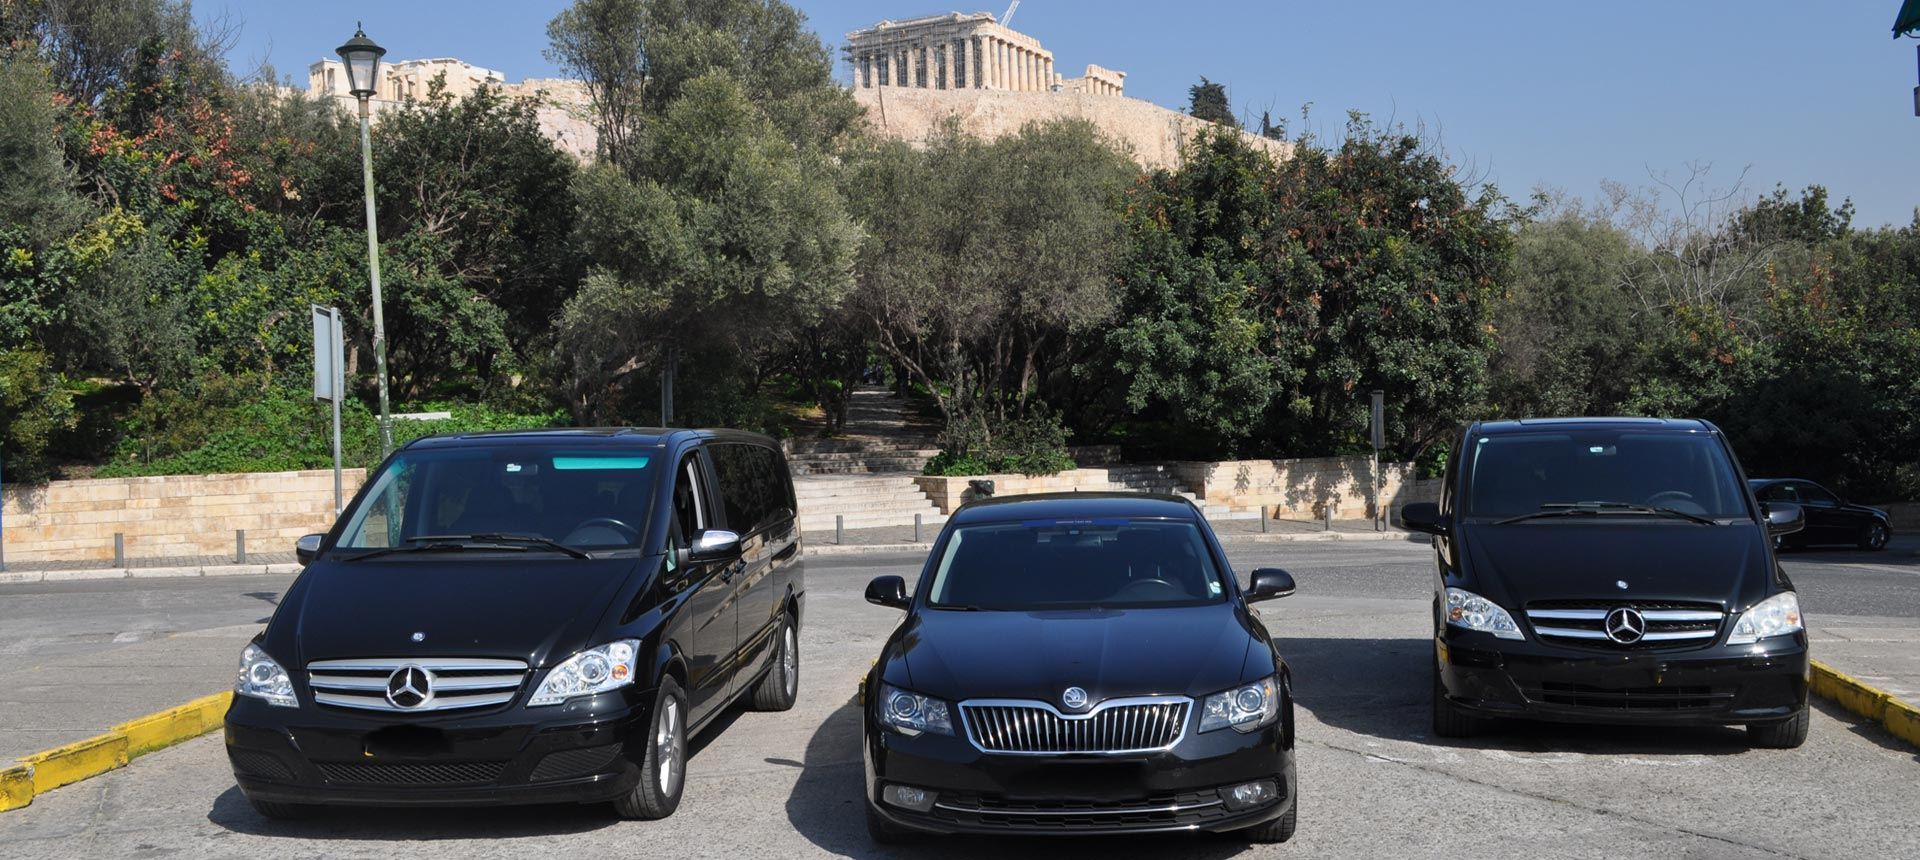 Athens Private Transfers